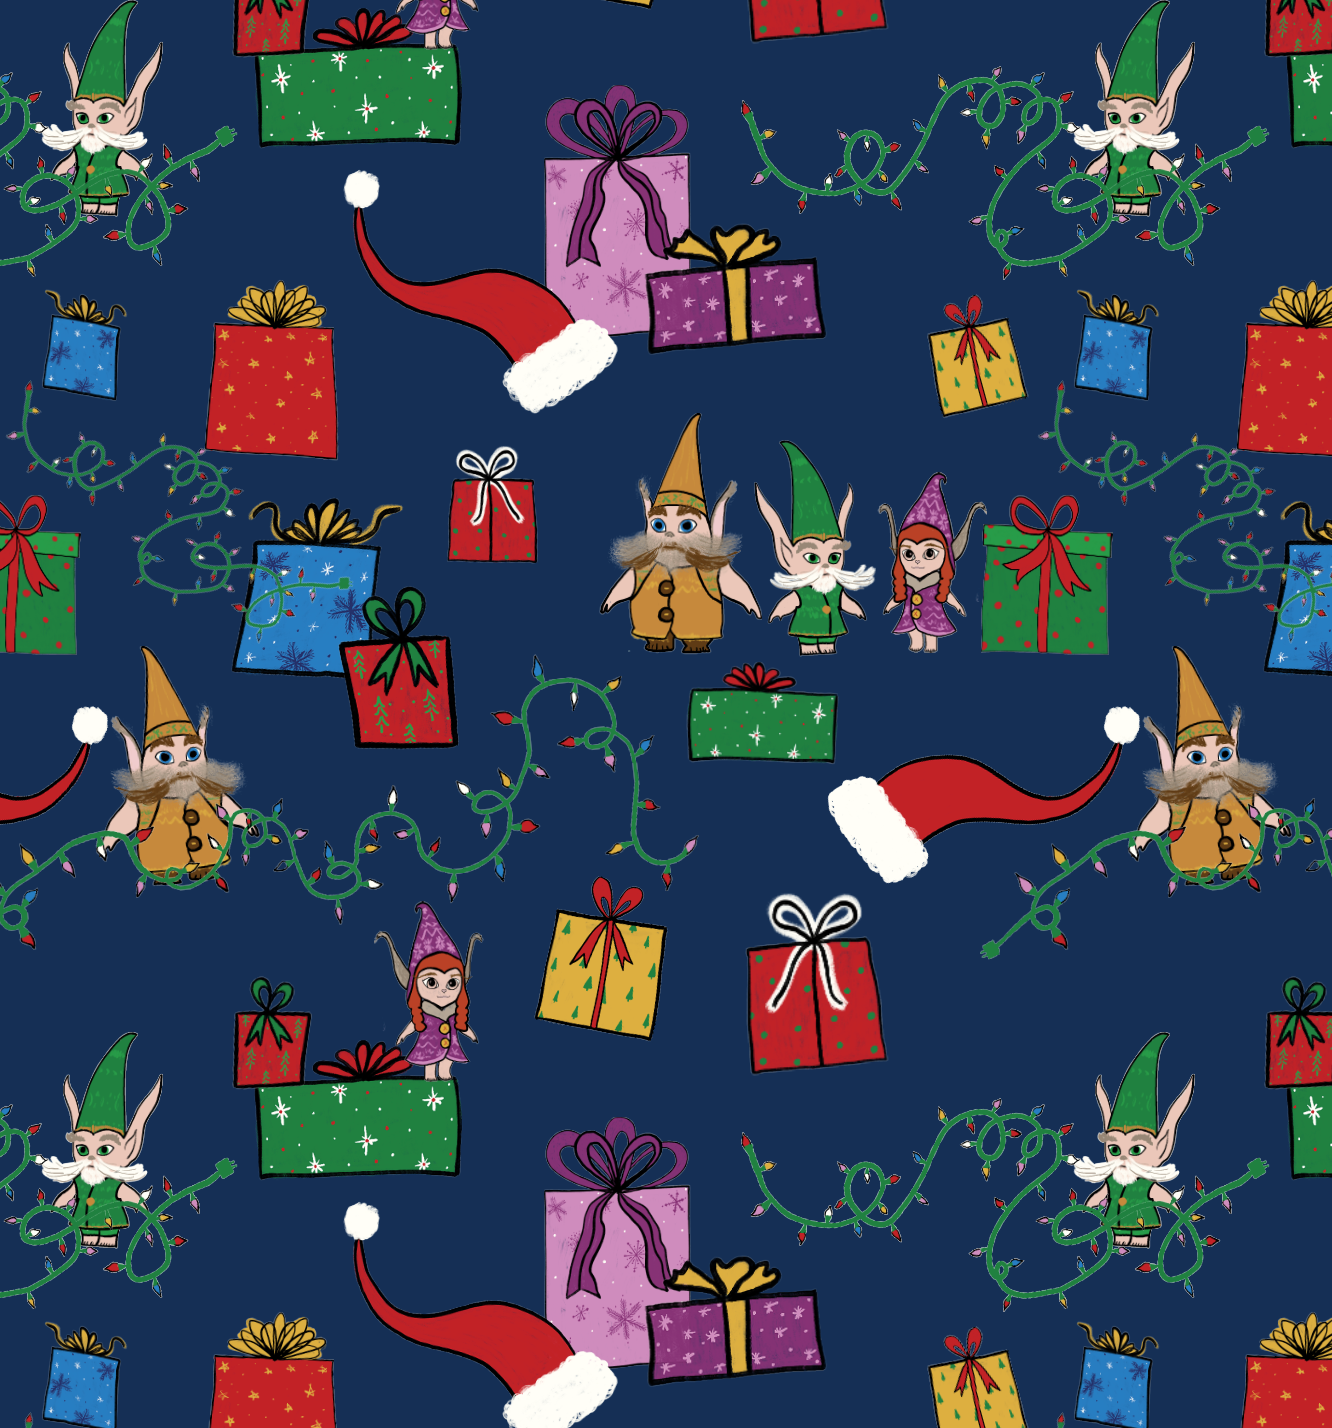 The Christmas Chronicles wrapping paper pattern by Erika Firm for Netflix